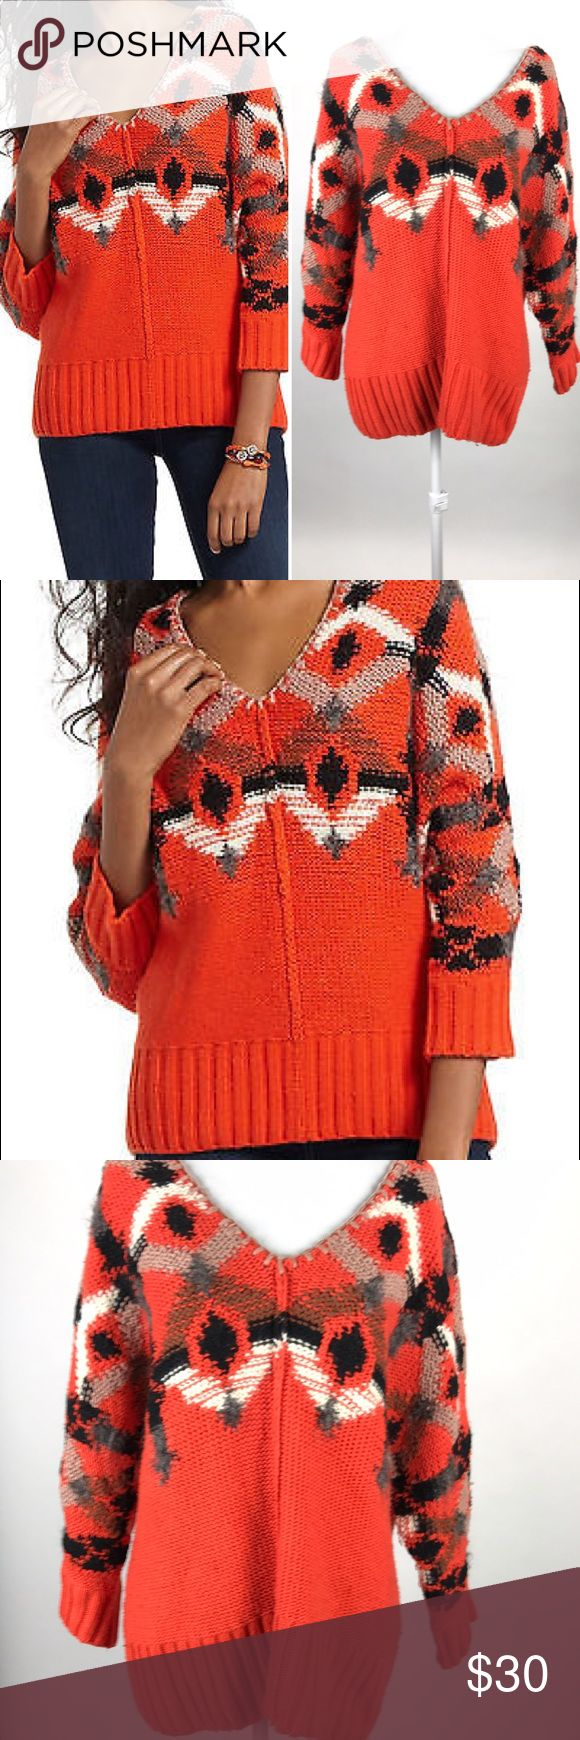 FIETS VOOR 2 Orange Pullover Sweater Anthropologie Gorgeous sweater from Anthro!  Size medium Cotton / wool blend with small mohair sections  VGUC - some light wash wear but overall very nice Anthropologie Sweaters V-Necks